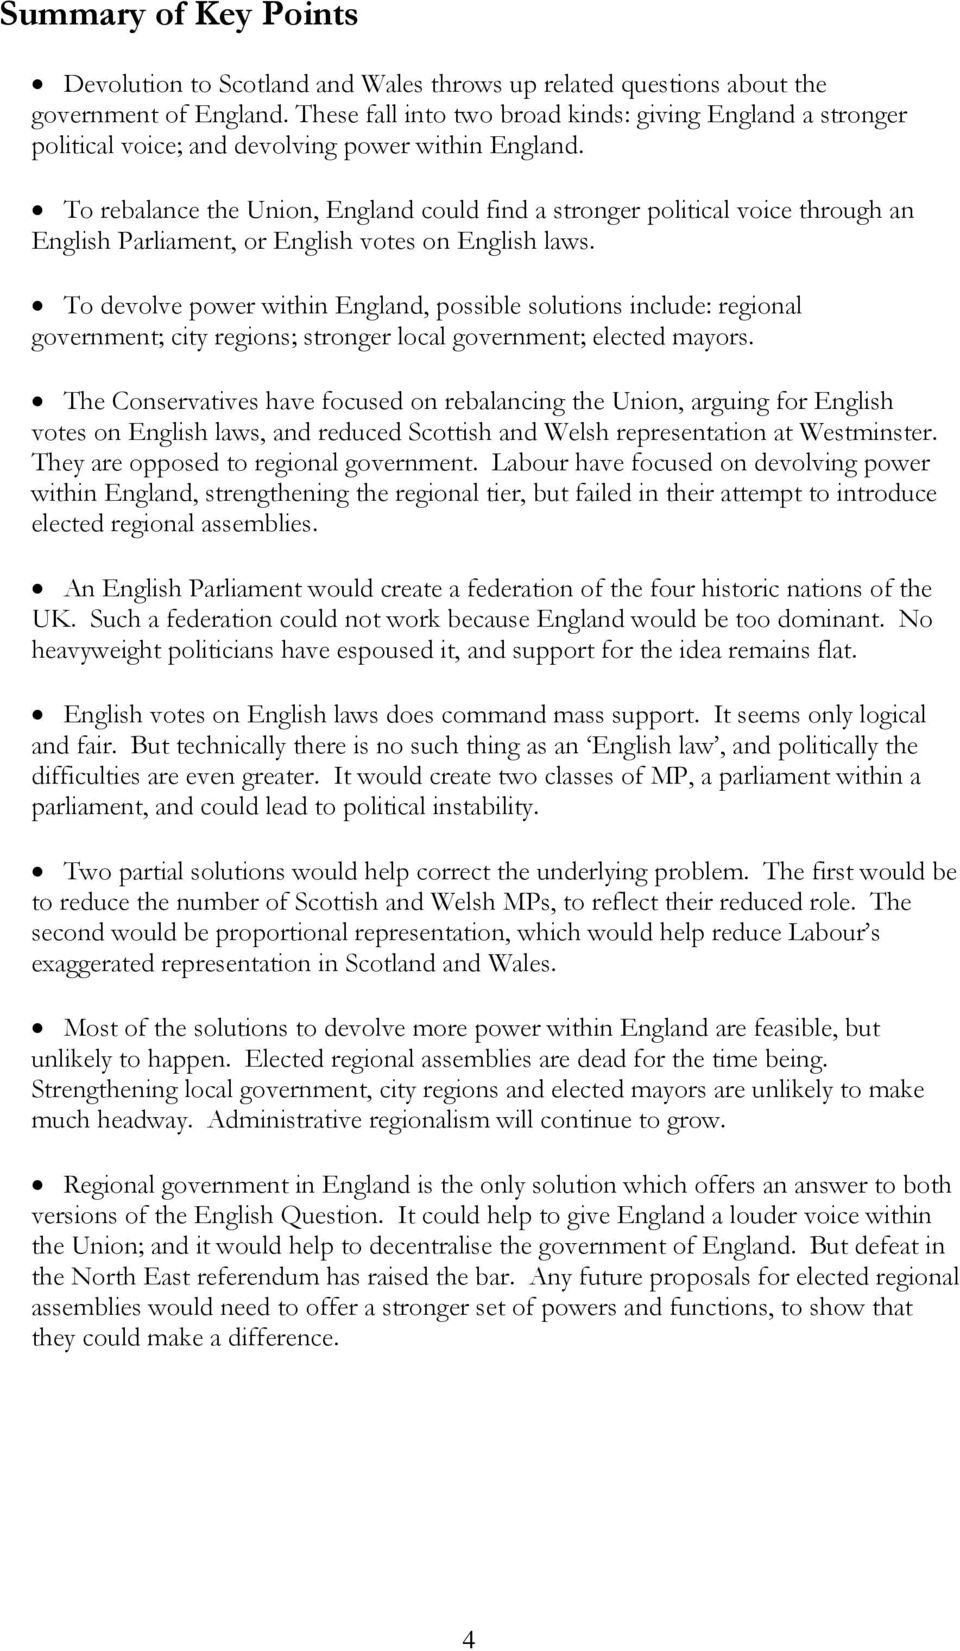 To rebalance the Union, England could find a stronger political voice through an English Parliament, or English votes on English laws.